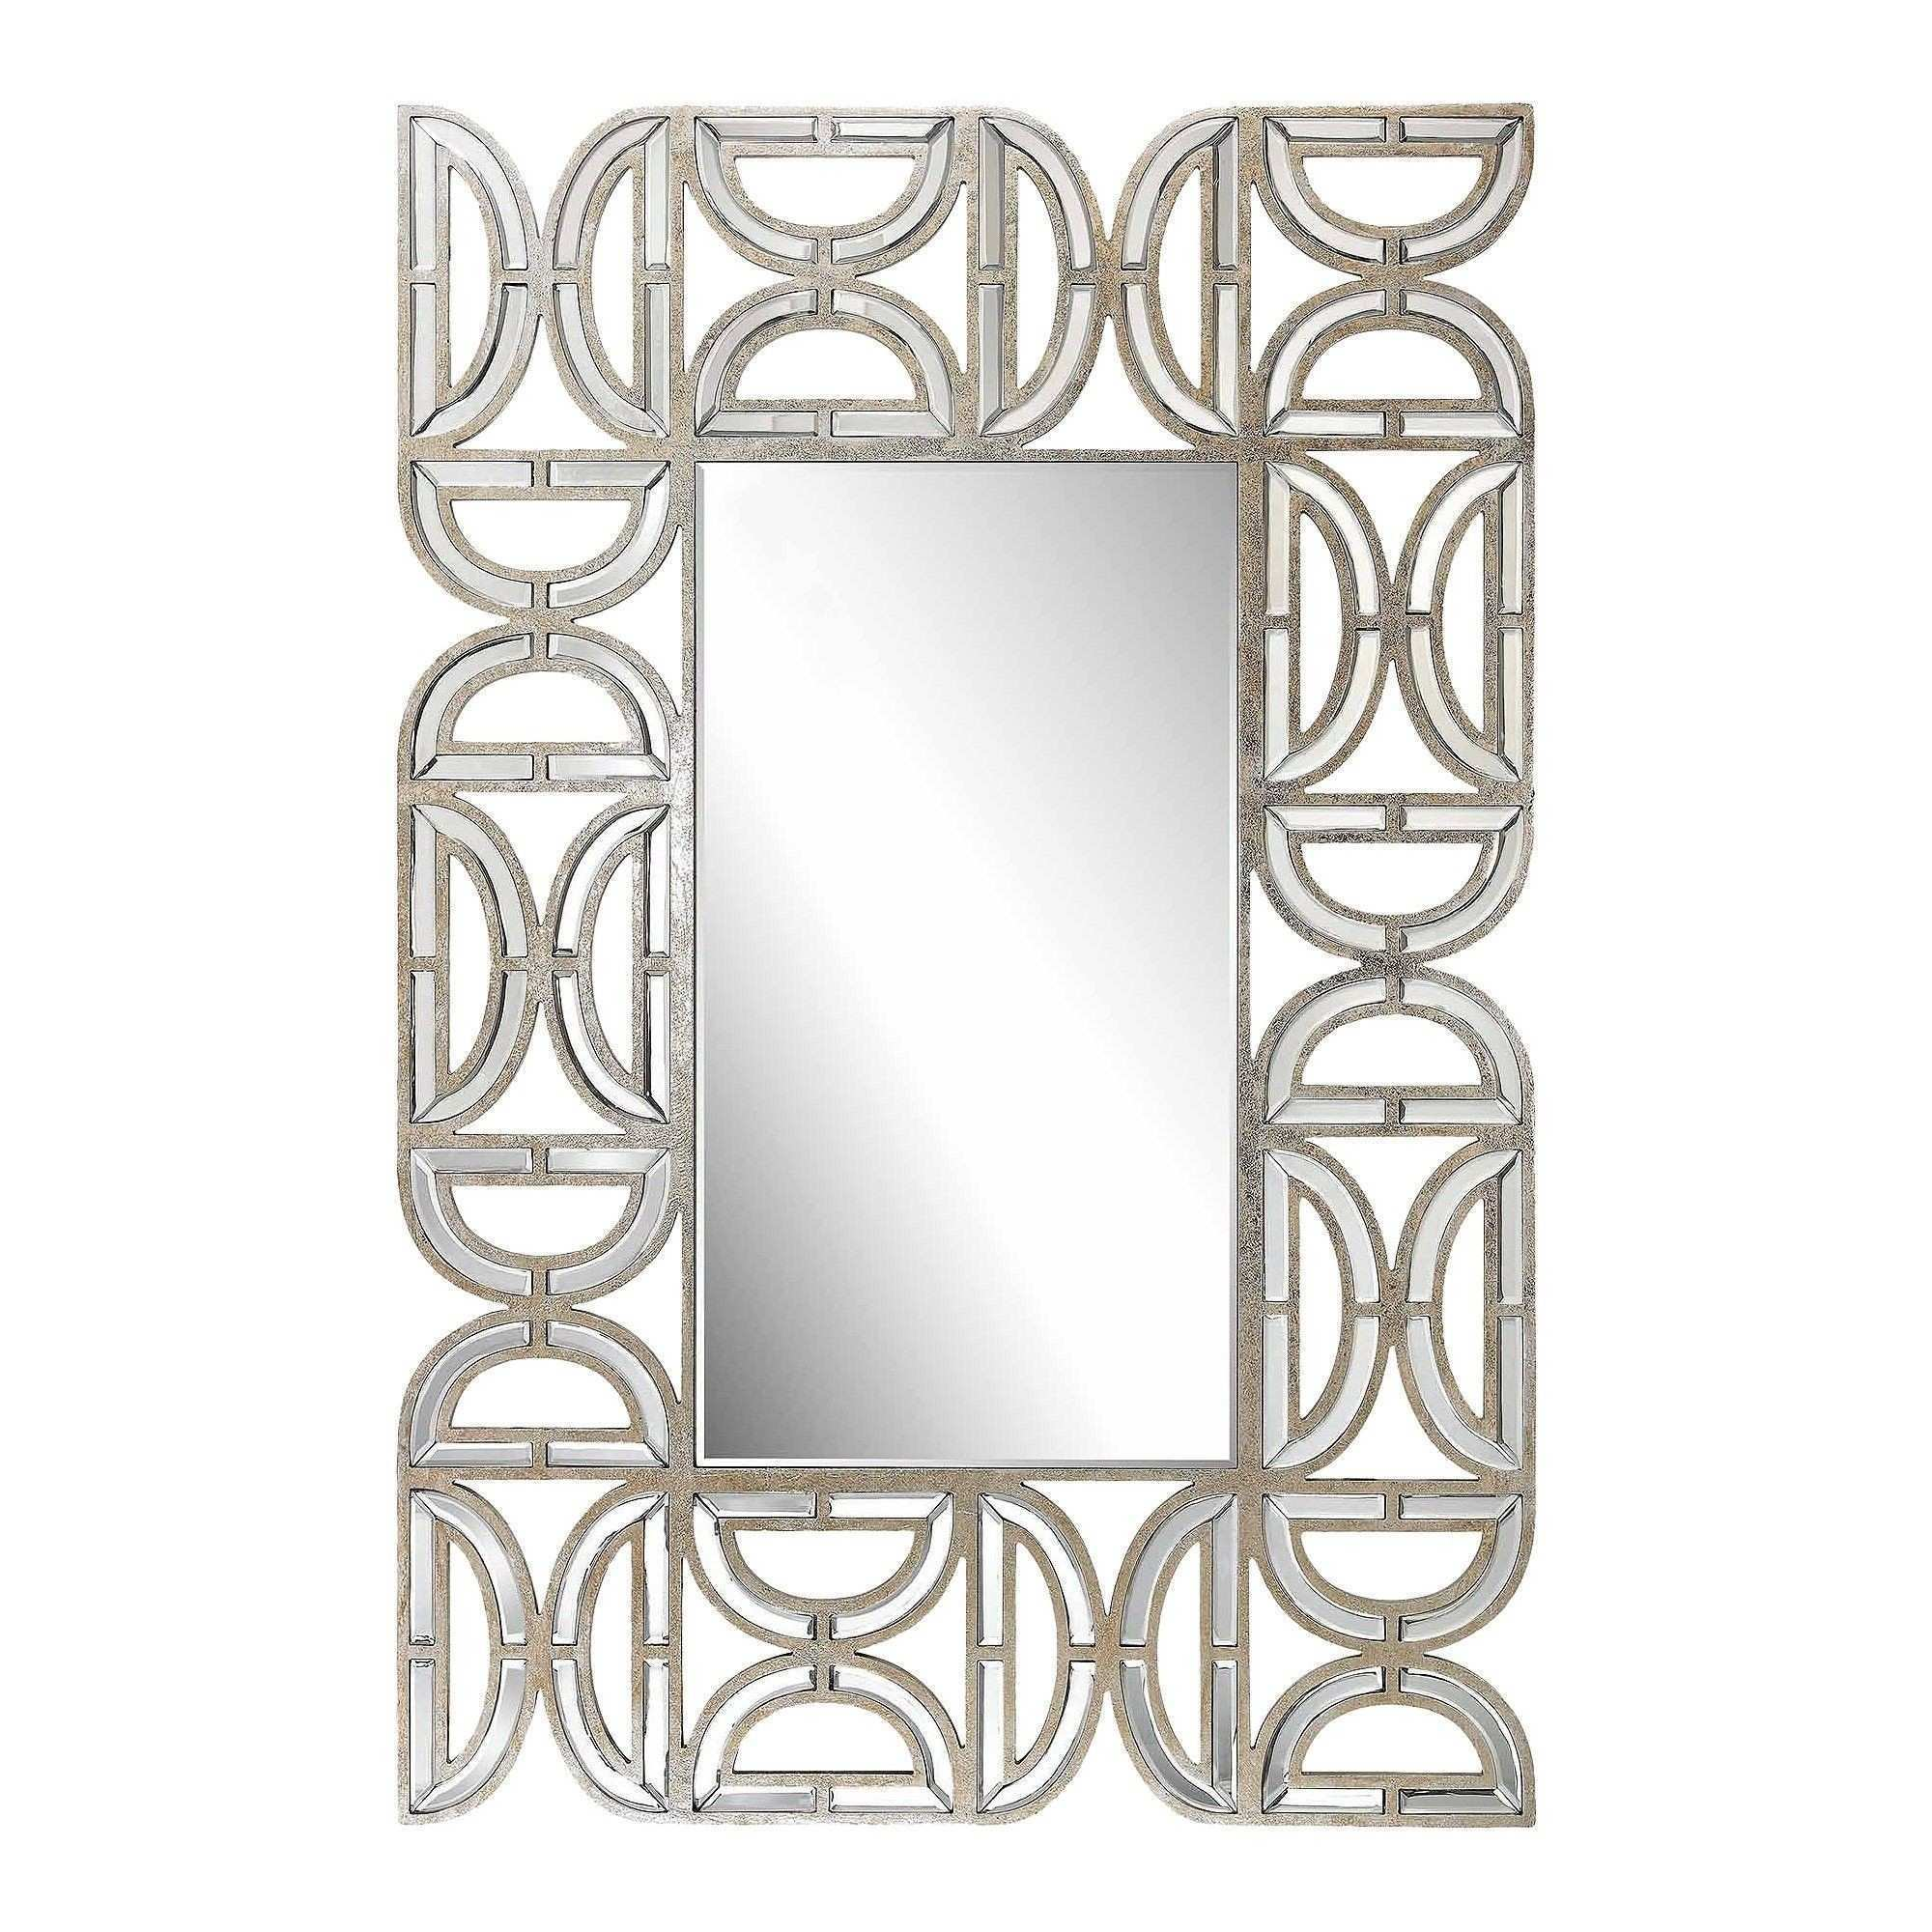 Wall Decor with Mirrors Awesome Home Wall Frames Awesome Metal Wall ...